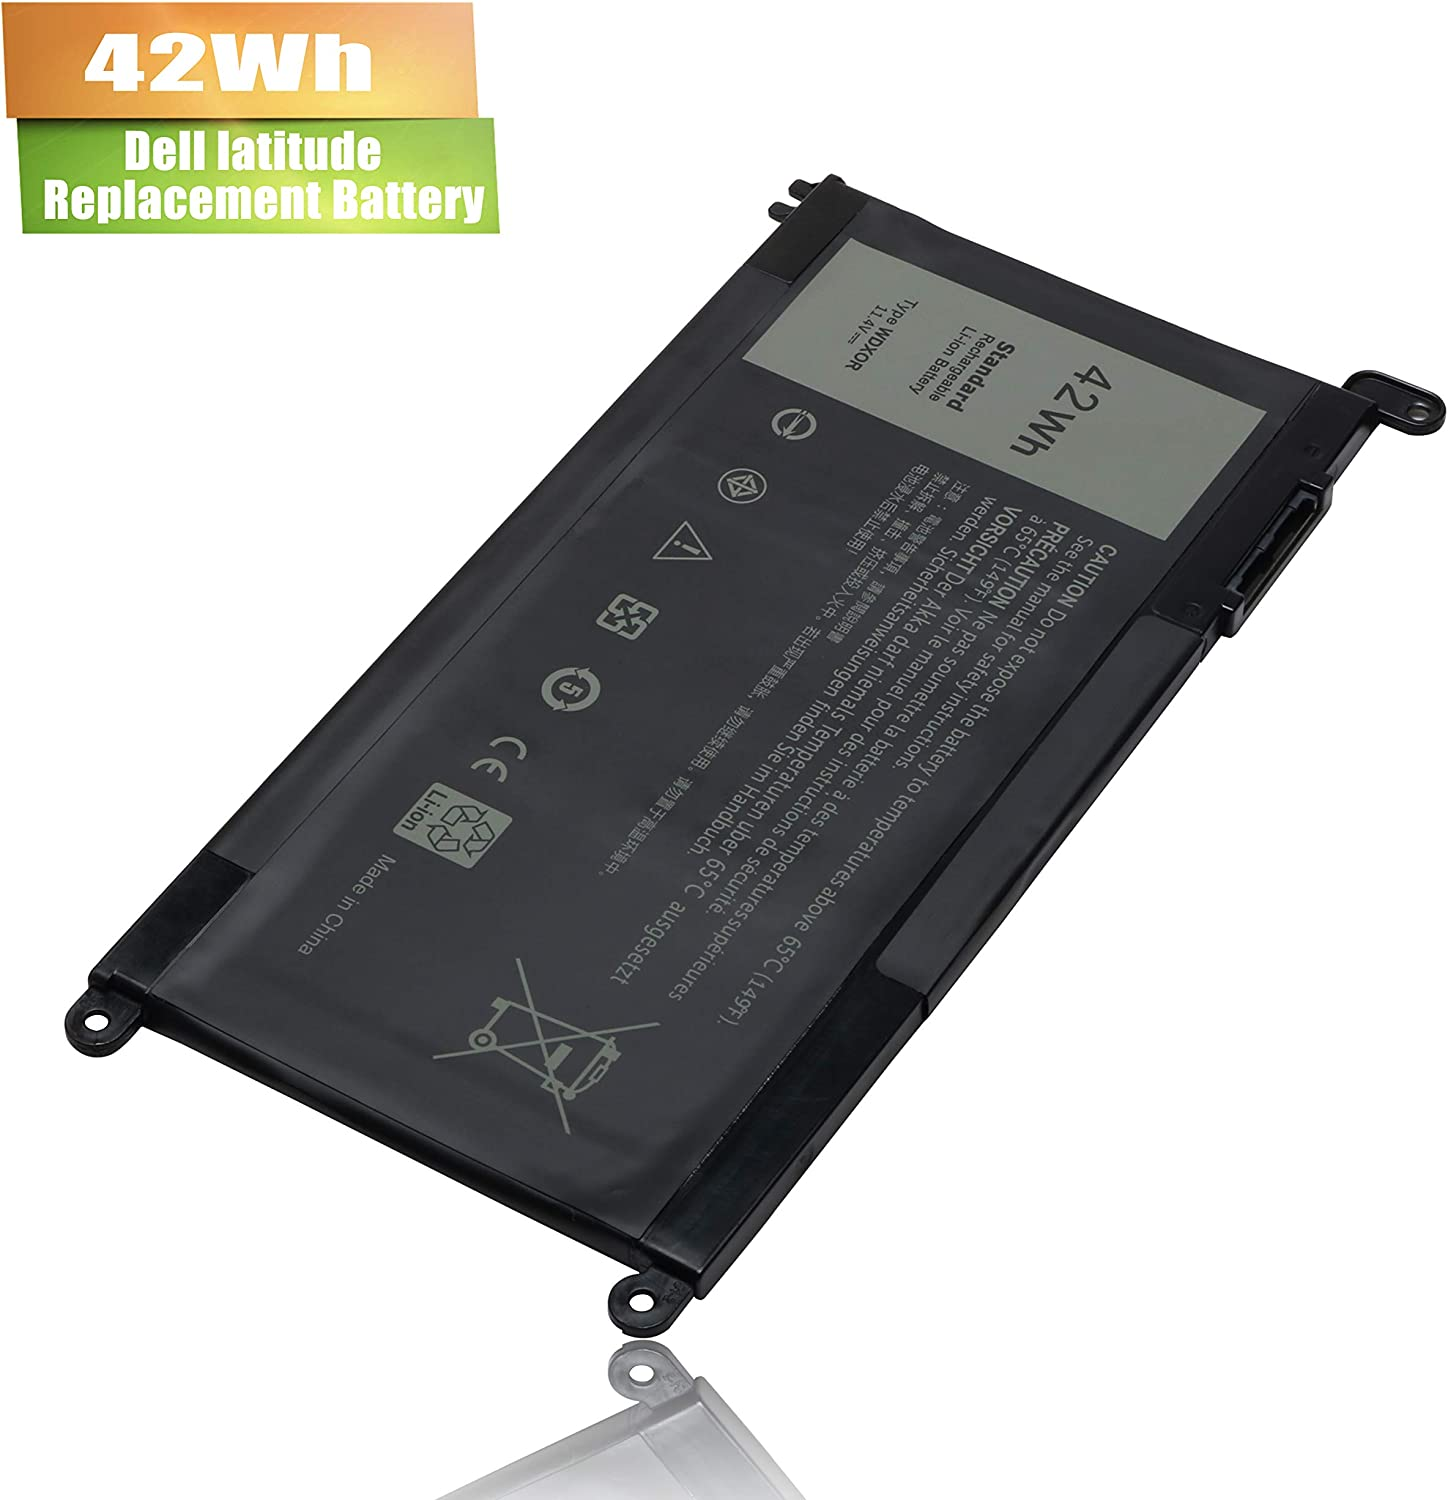 WDX0R Laptop Battery for Dell Inspiron 15 5565 5567 5568 5578 7560 7570 7579 7569 P58F Inspiron 17 5765 5767 Inspiron 13 5368 5378 5379 7368 7378 Inspiron 14-7460 FC92N 3CRH3 T2JX4 CYMGM - 42Wh/11.4V